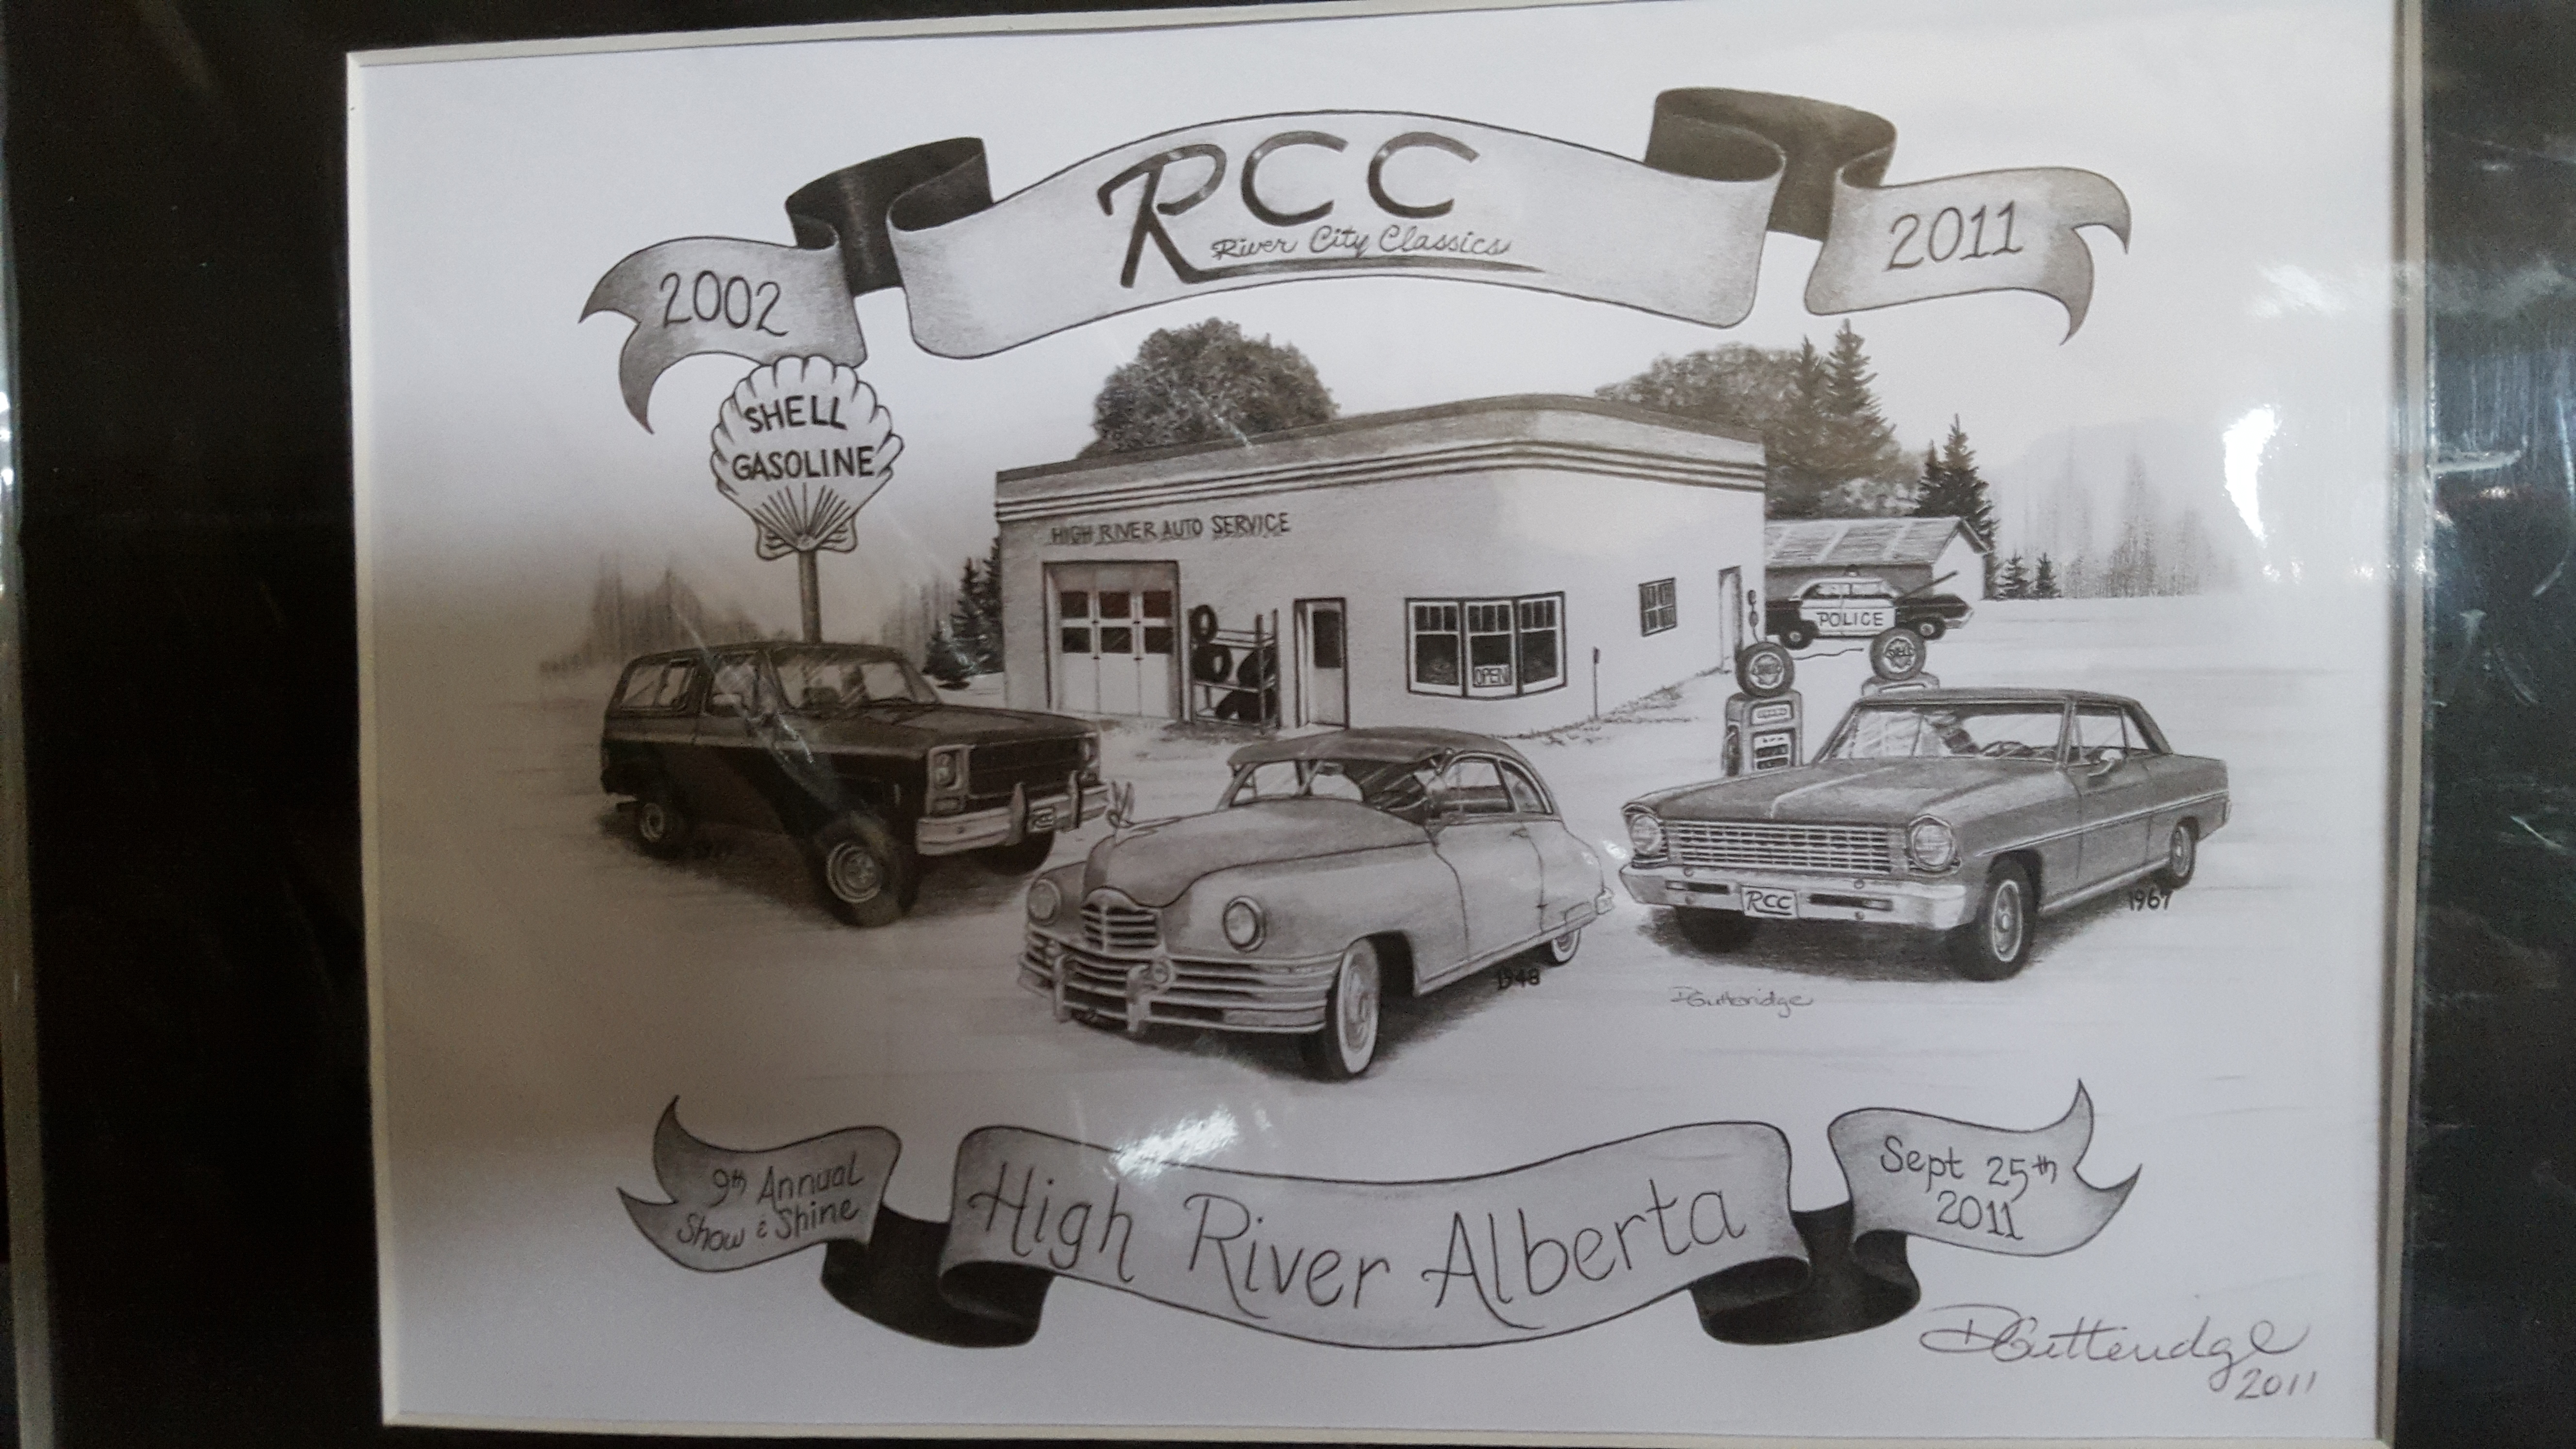 2011 Show Poster